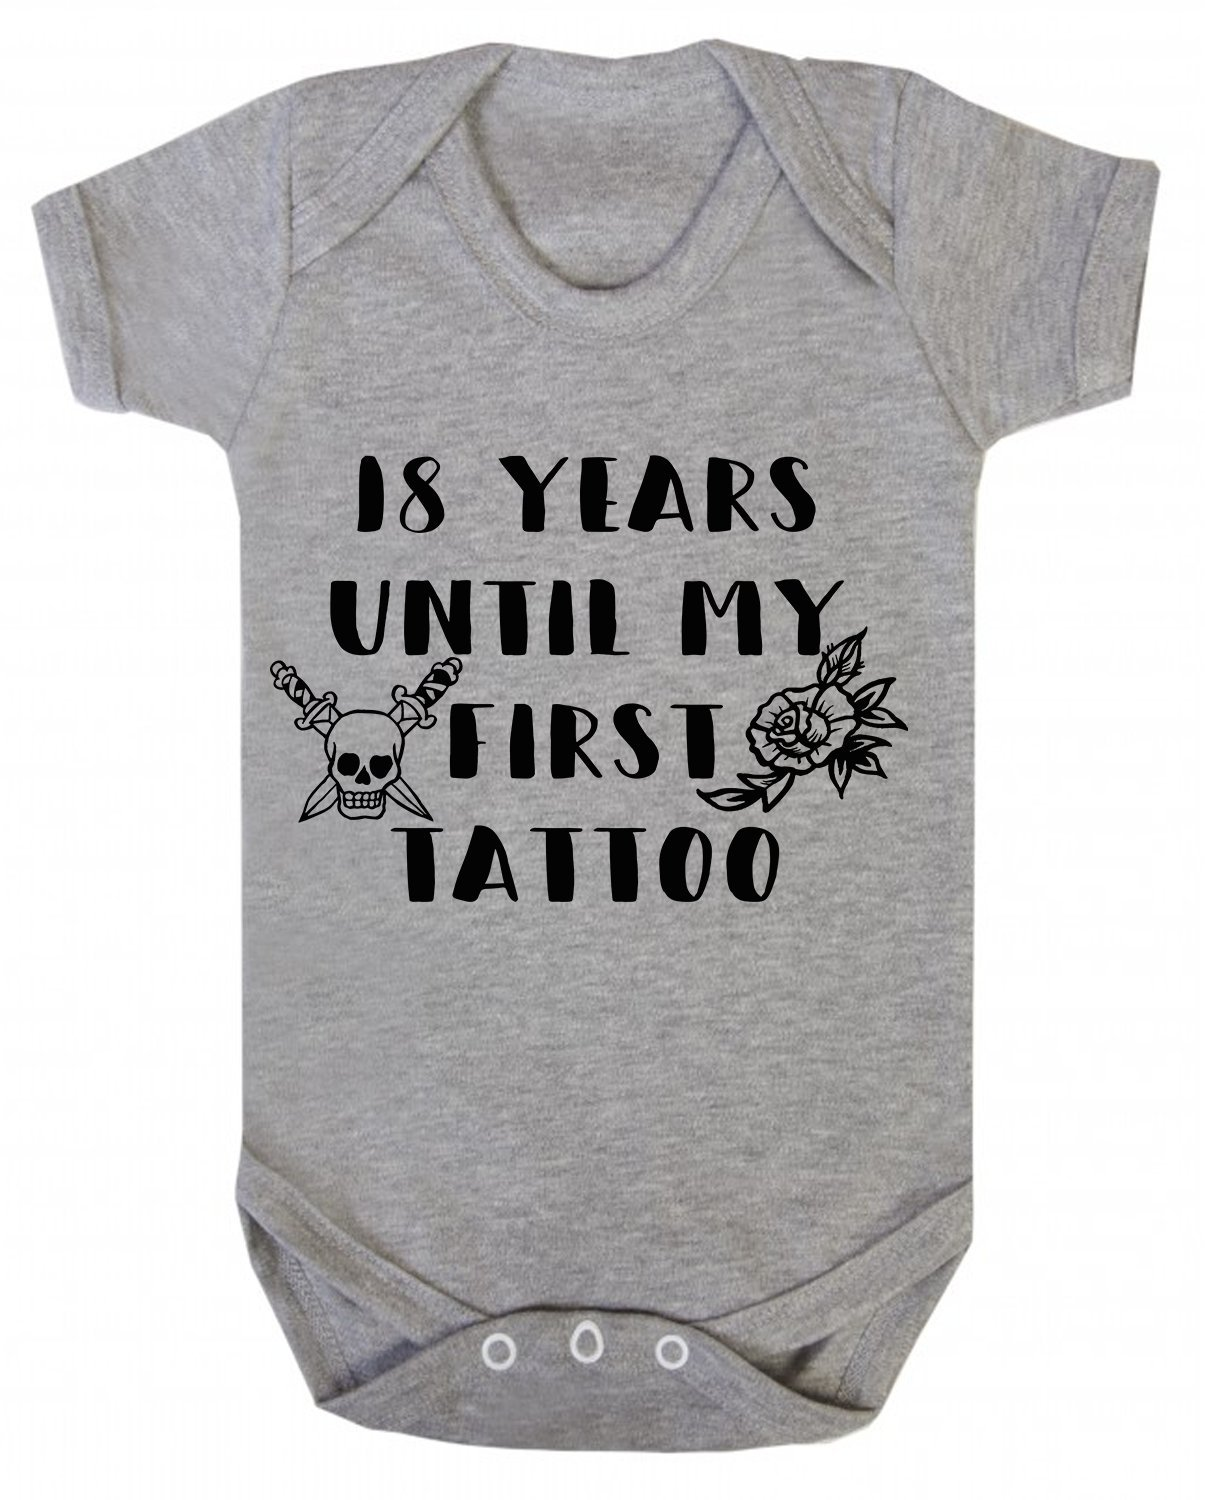 18 Years Until my First Tattoo Baby Vest Babygrow Bodysuit Novelty Rock Baby